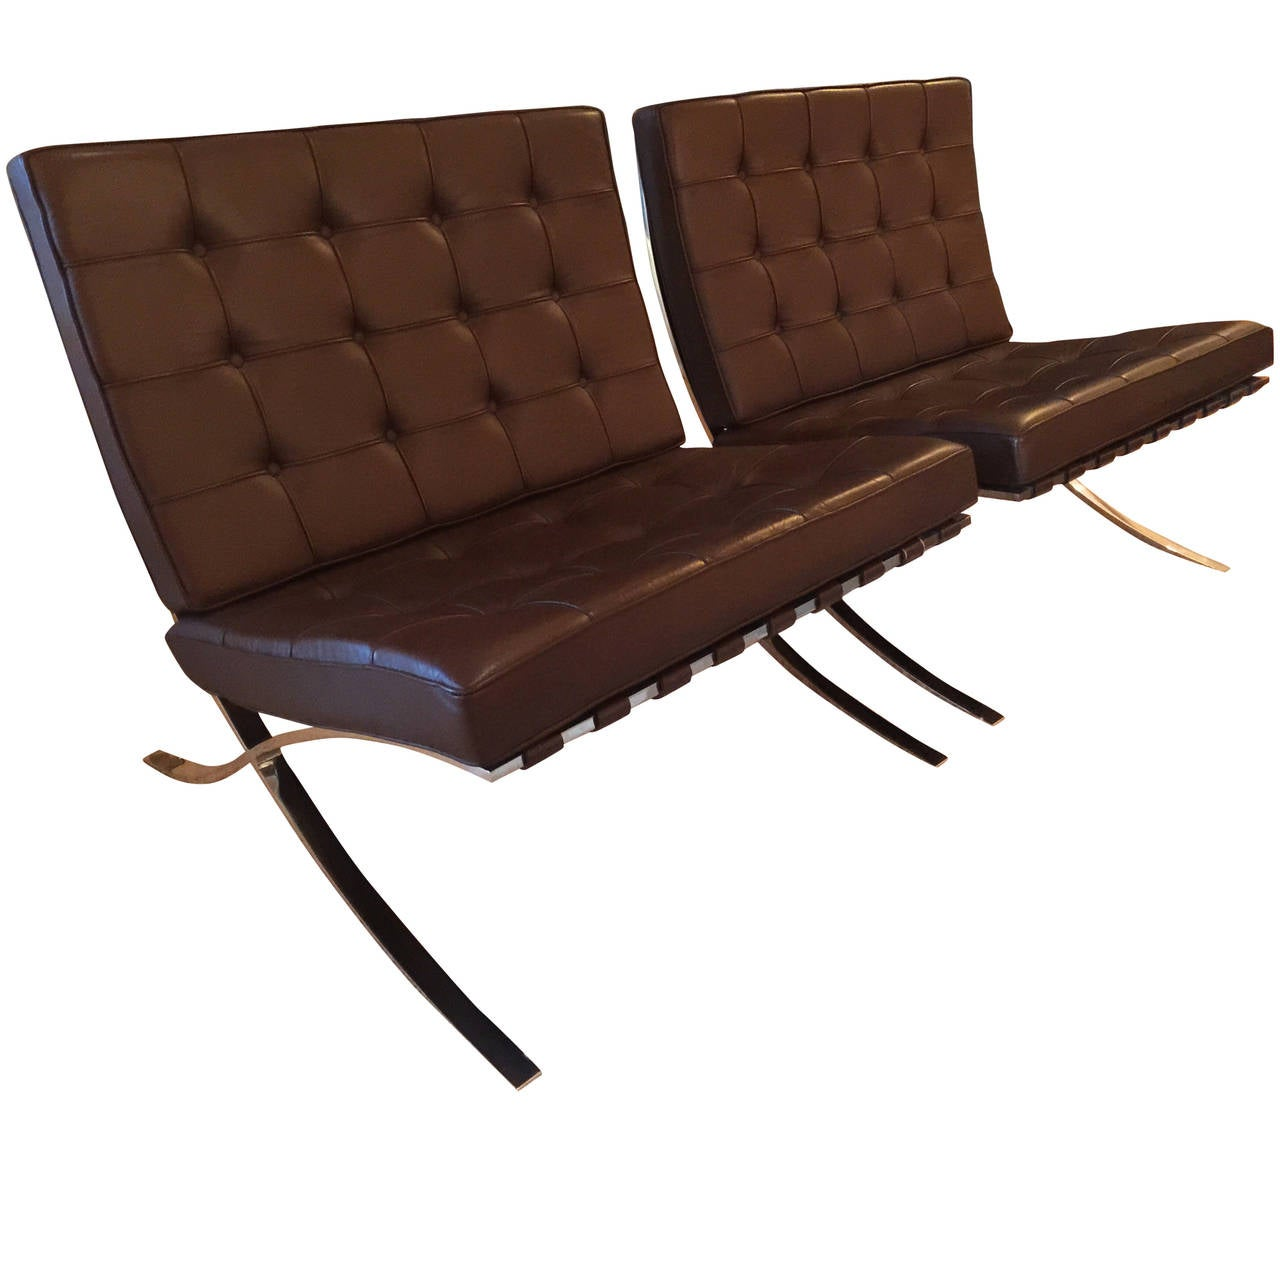 pair of barcelona brown leather chairs by mies van der rohe for knoll at 1stdibs. Black Bedroom Furniture Sets. Home Design Ideas